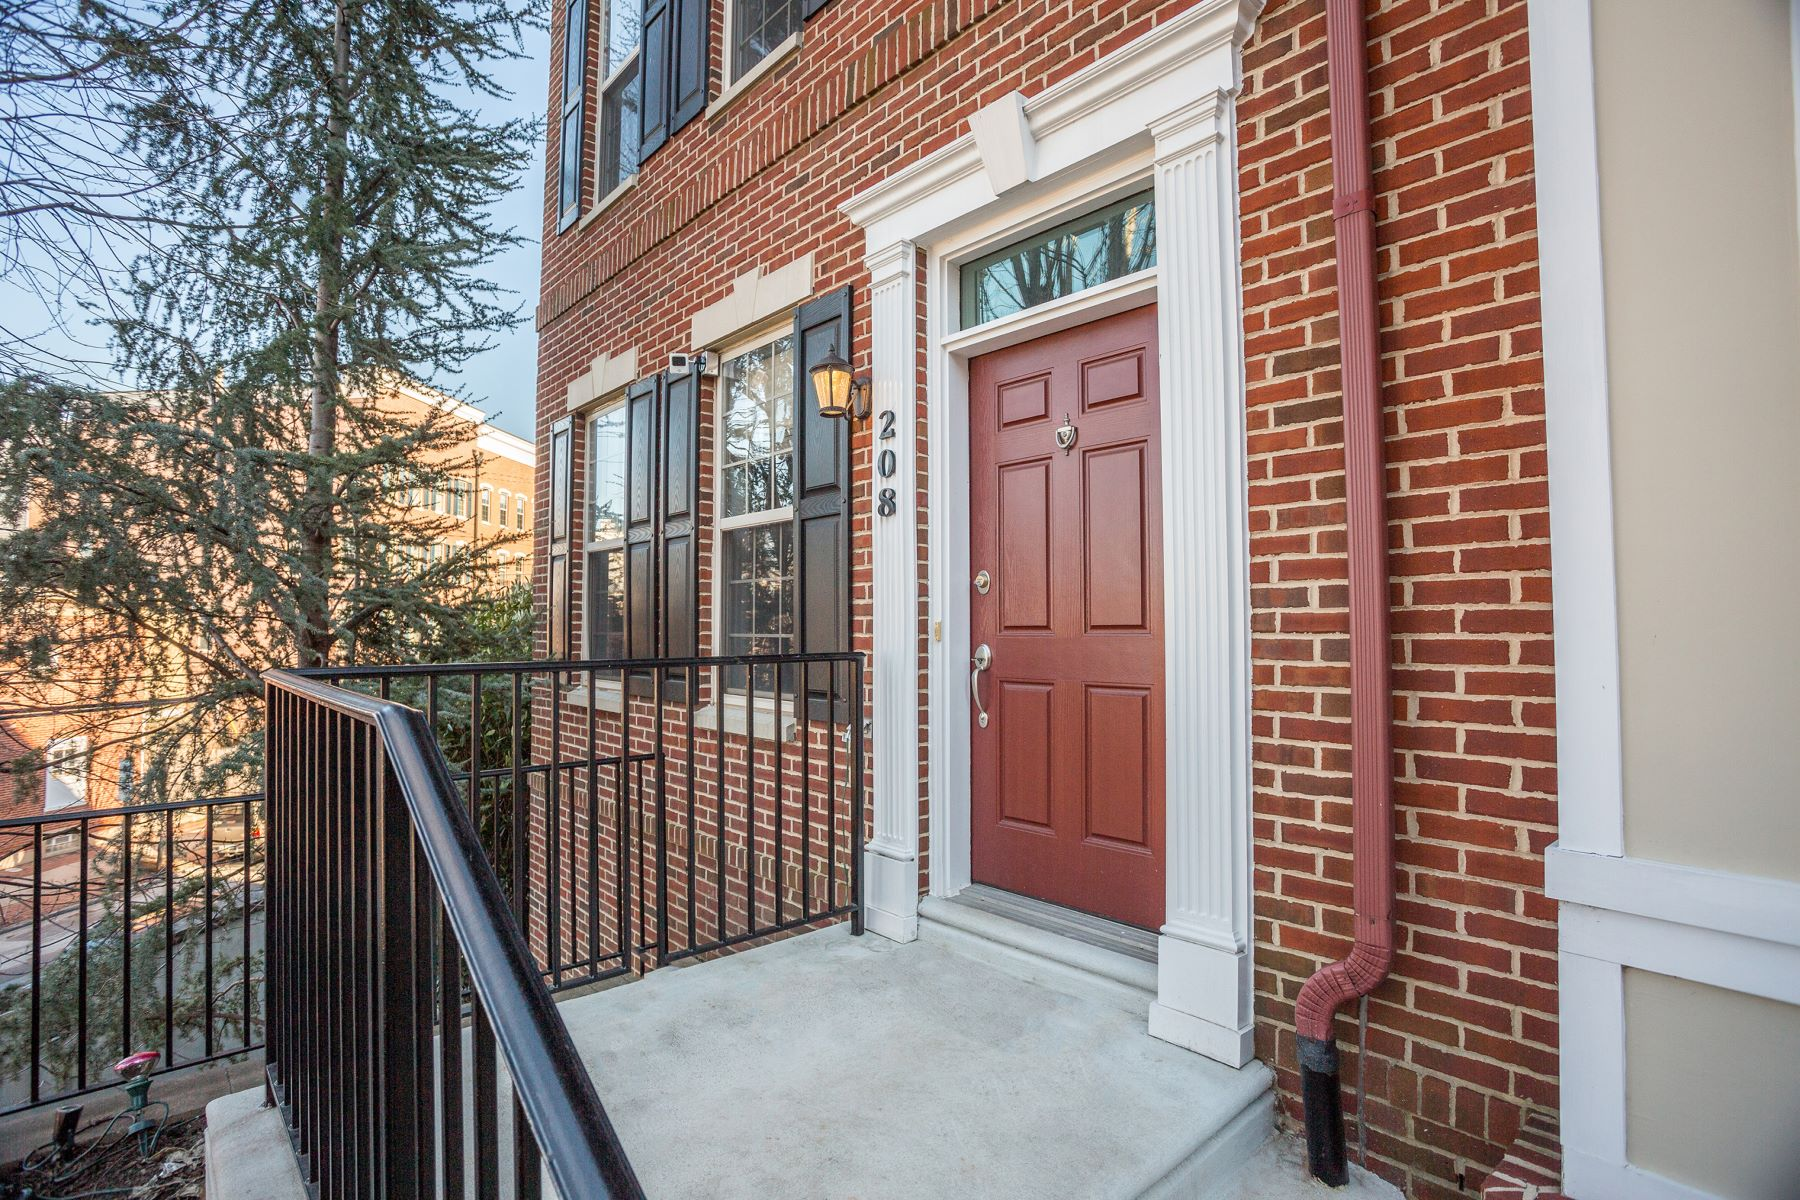 Townhouse for Sale at 208 Admirals Way 208 ADMIRALS WAY Philadelphia, Pennsylvania 19146 United States